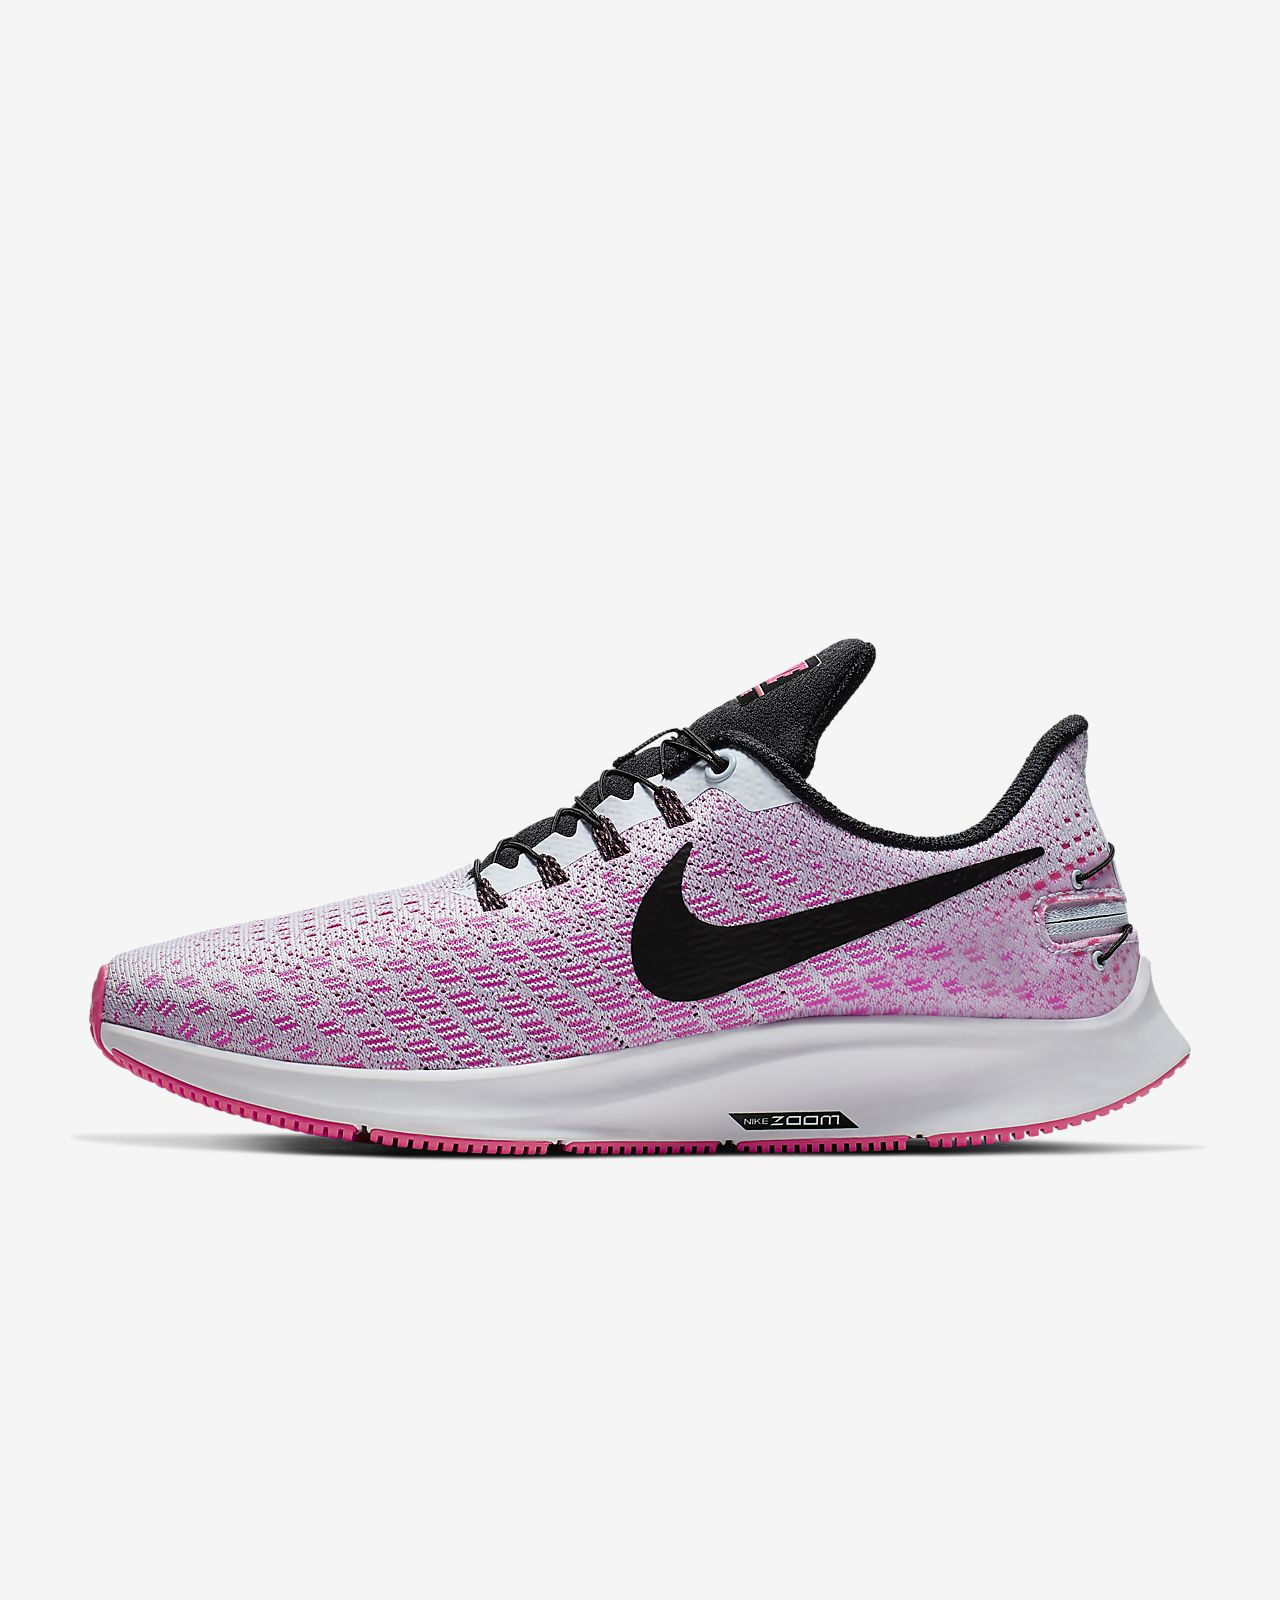 Chaussure de running Nike Air Zoom Pegasus 35 FlyEase pour Femme (large)